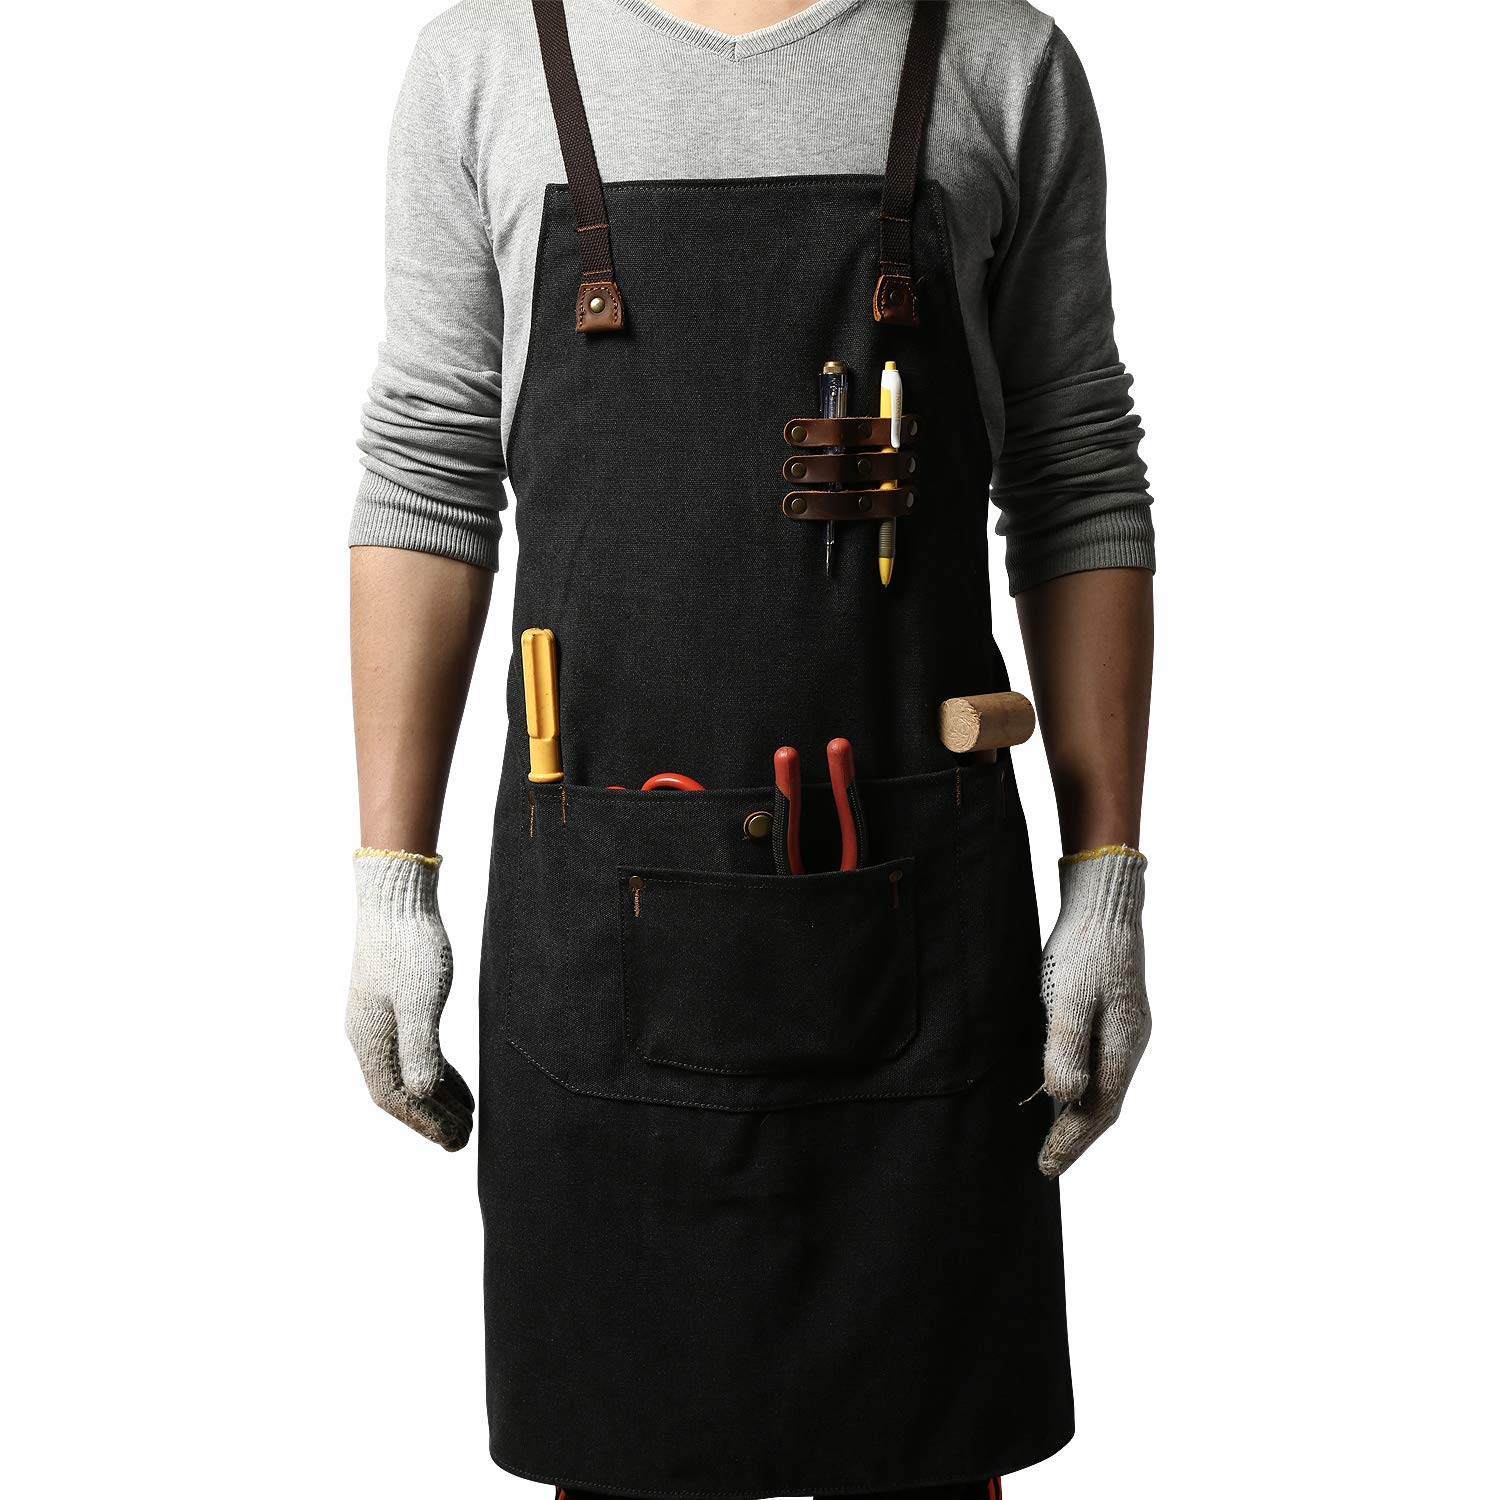 G-FAVOR Work Apron Canvas Tool Welding Apron Durable Heavy Duty with Tool Pockets for Men Women Cross Back Straps Adjustable S to XXL(Black)